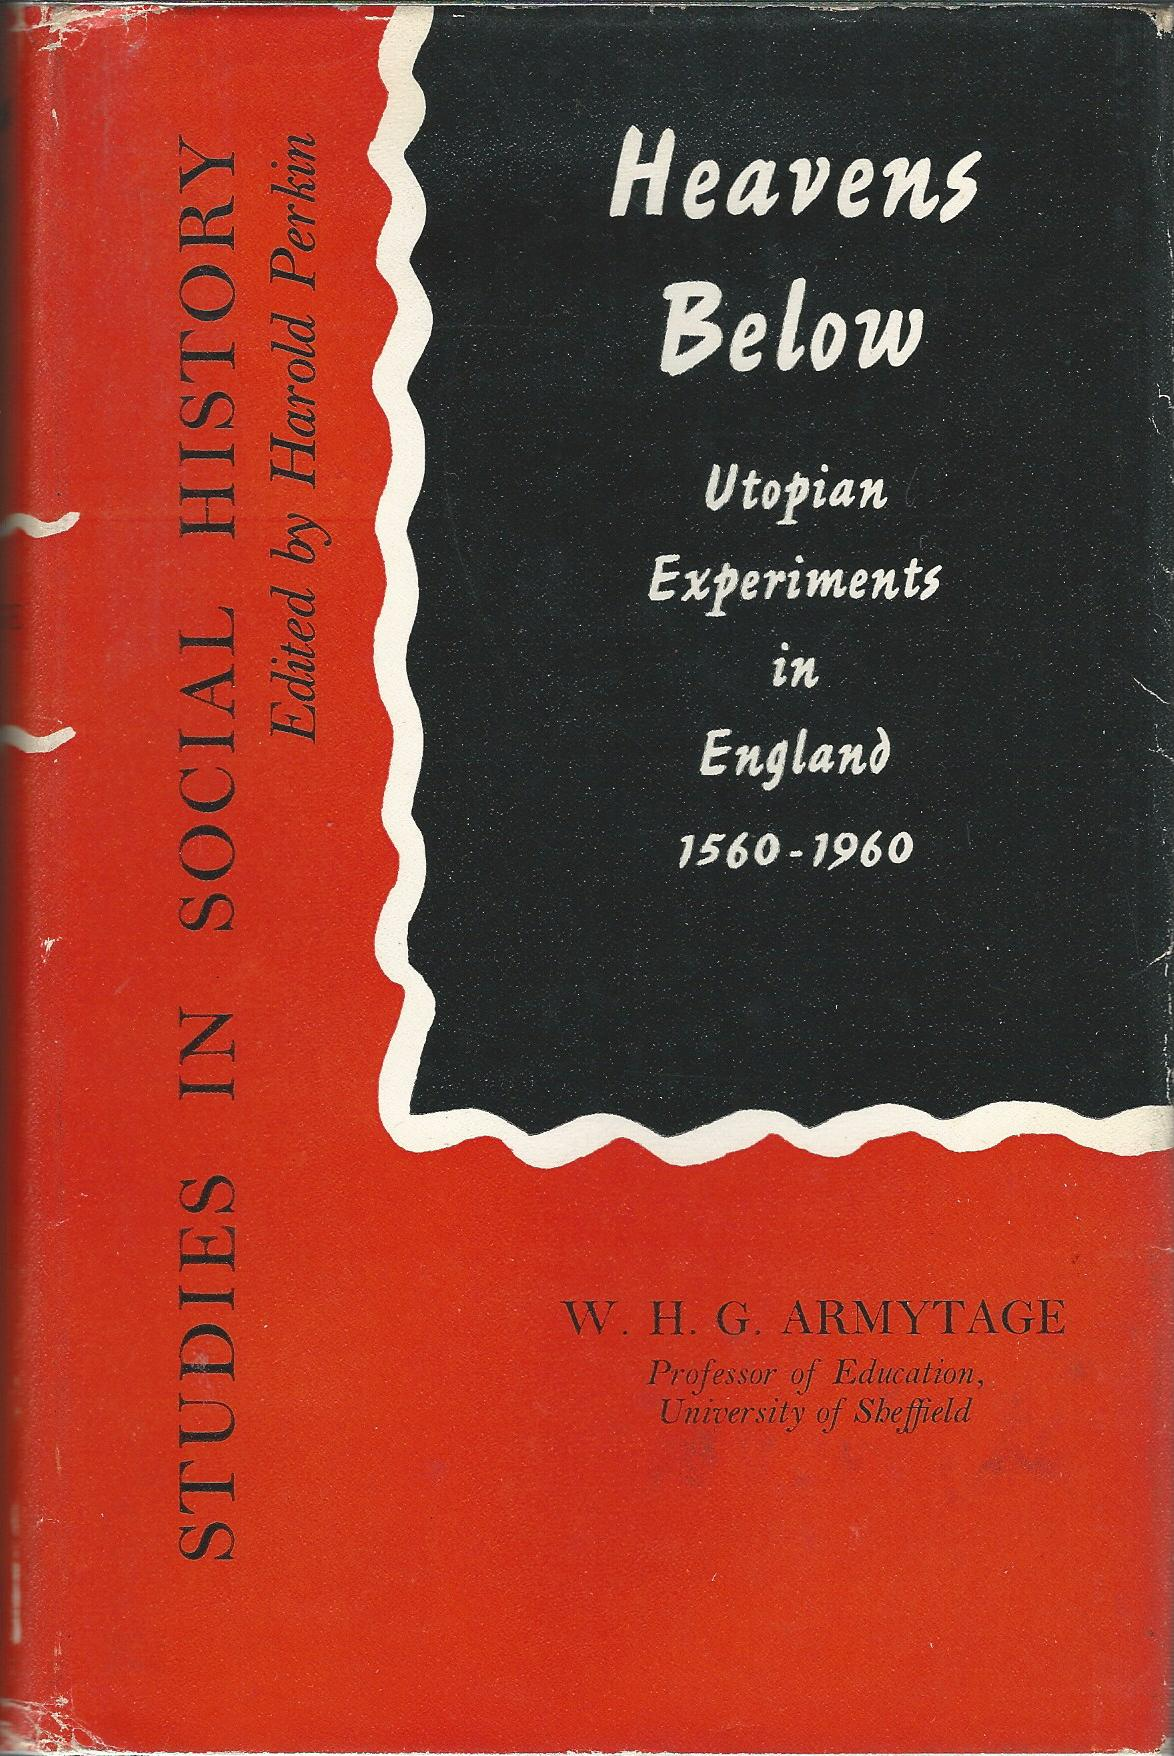 Heavens Below: Utopian Experiments in England 1560 - 1960.